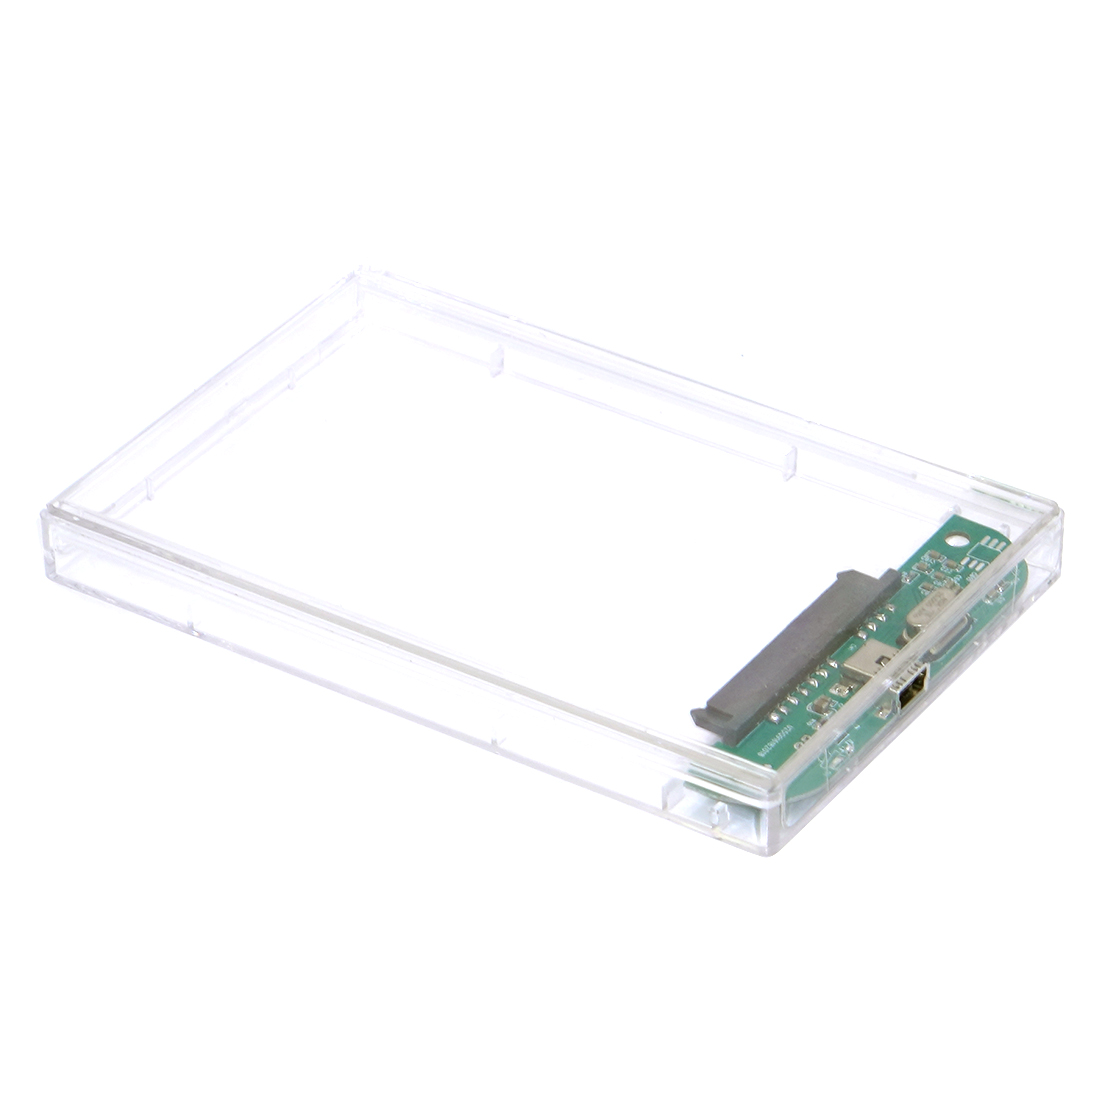 "X-Media 2.5/"" SuperSpeed USB 3.0 External SATA HDD Aluminum Enclosure"